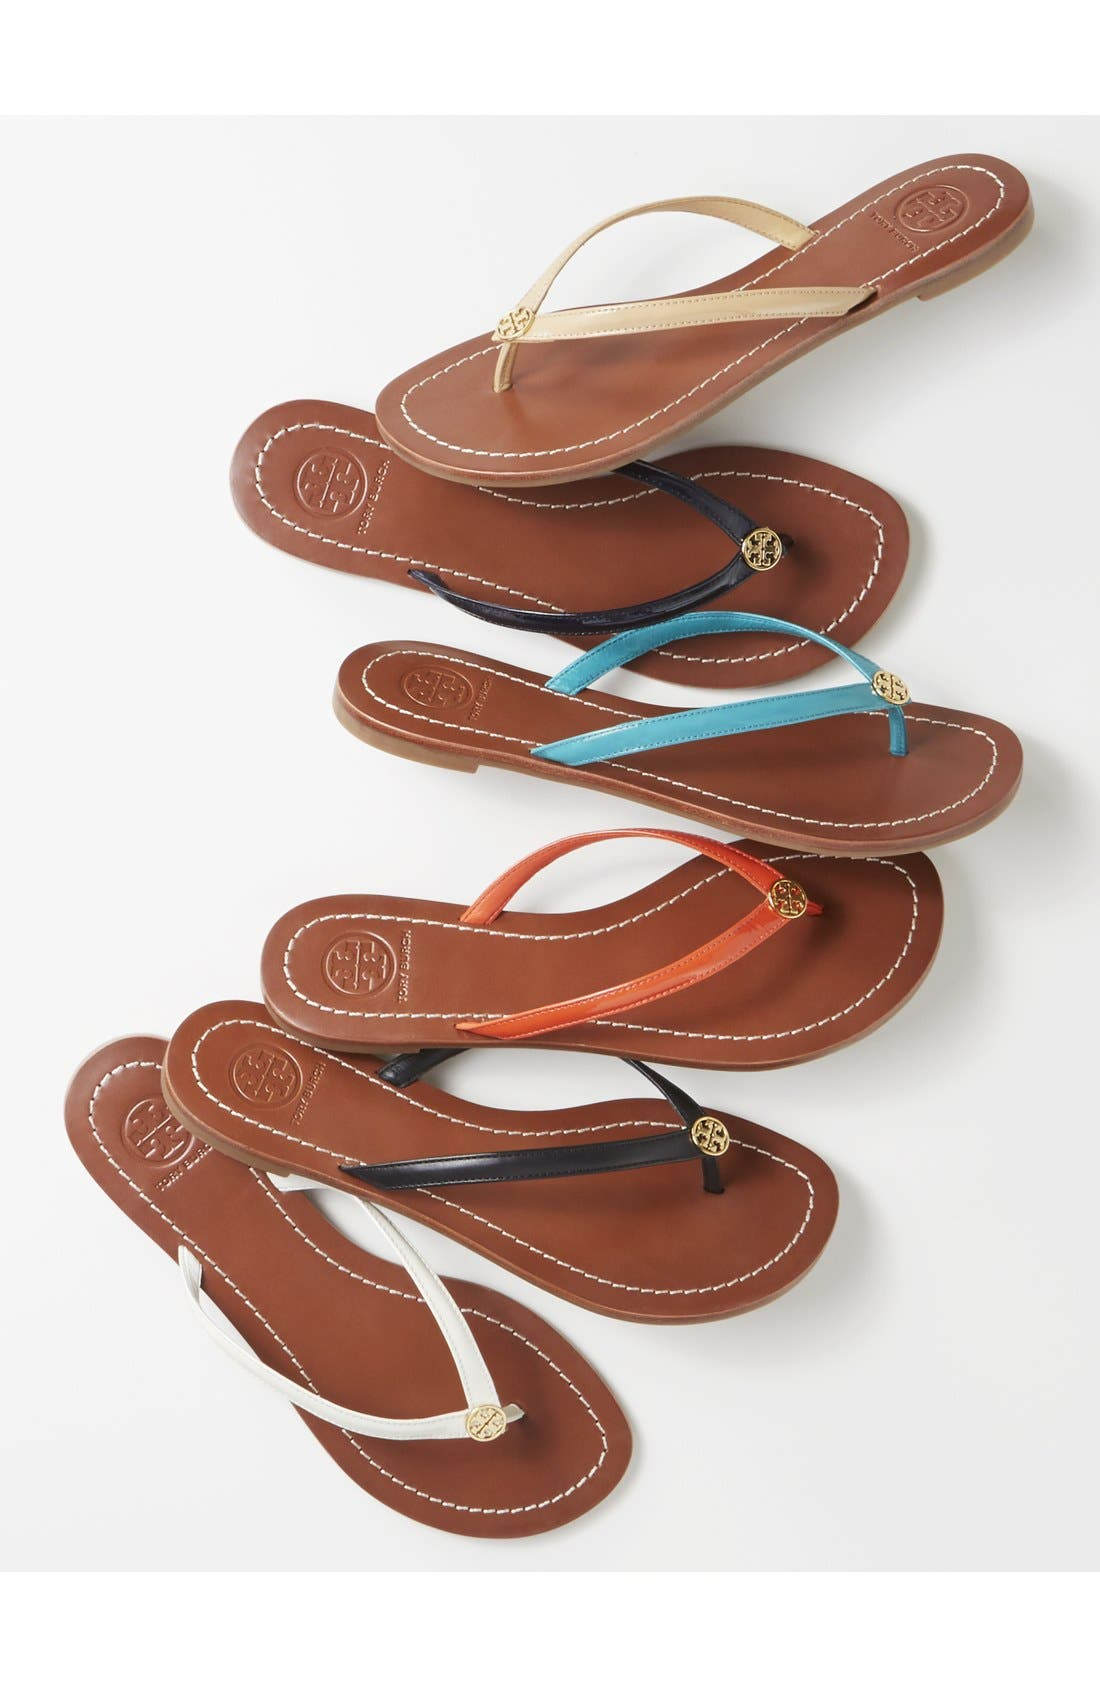 TORY BURCH, 'Terra' Flip Flop, Alternate thumbnail 5, color, 001